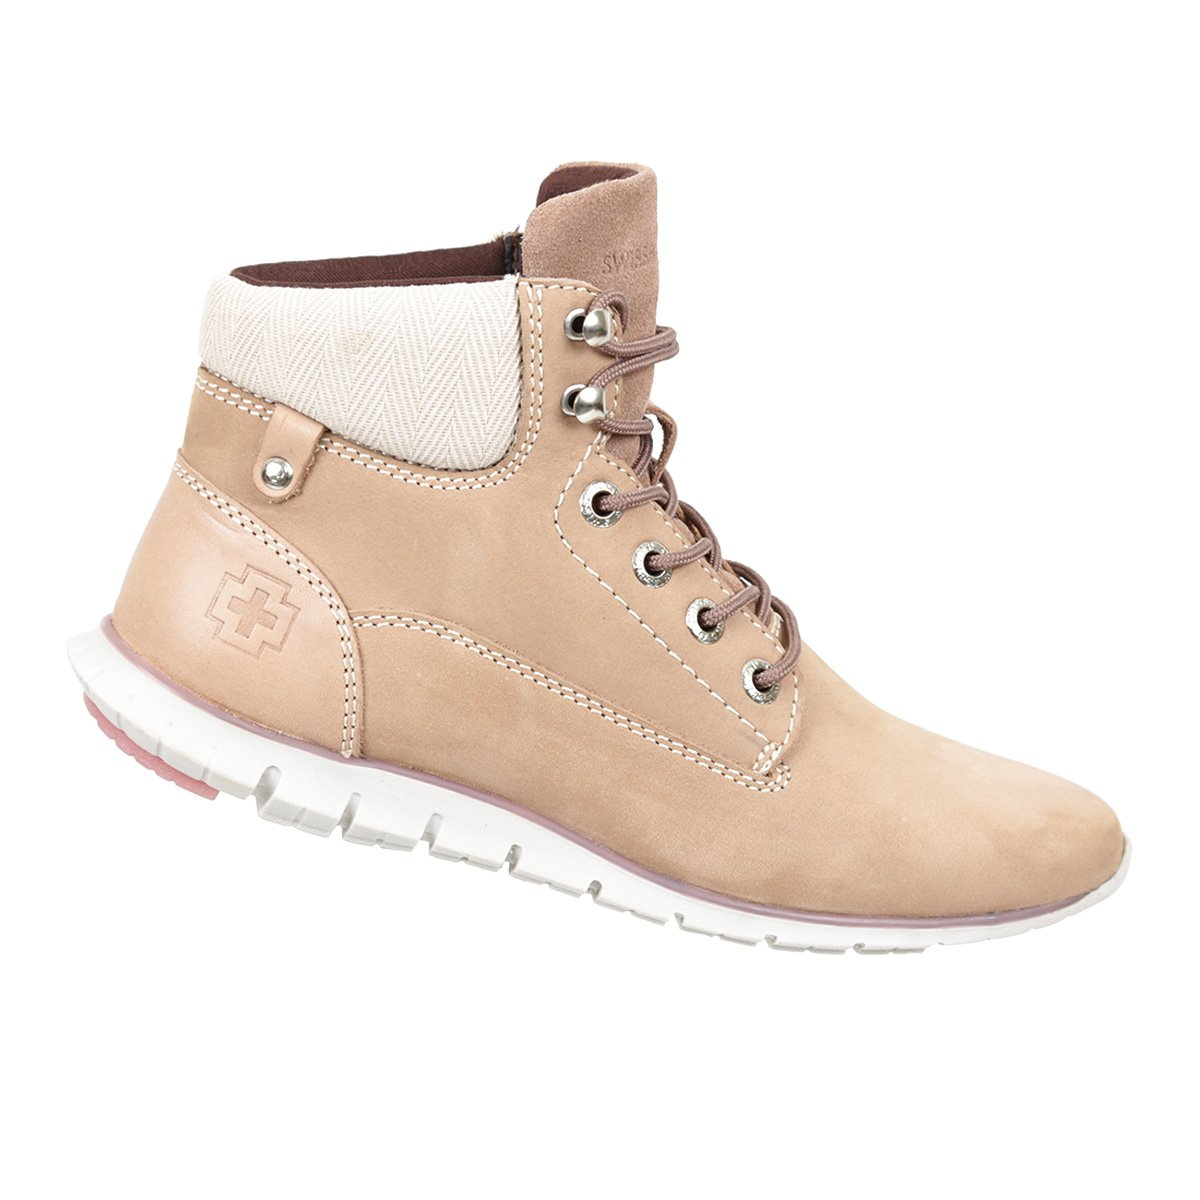 Swissbrand Women's Casual High-Top Lace-Up Boot Pink 6.5